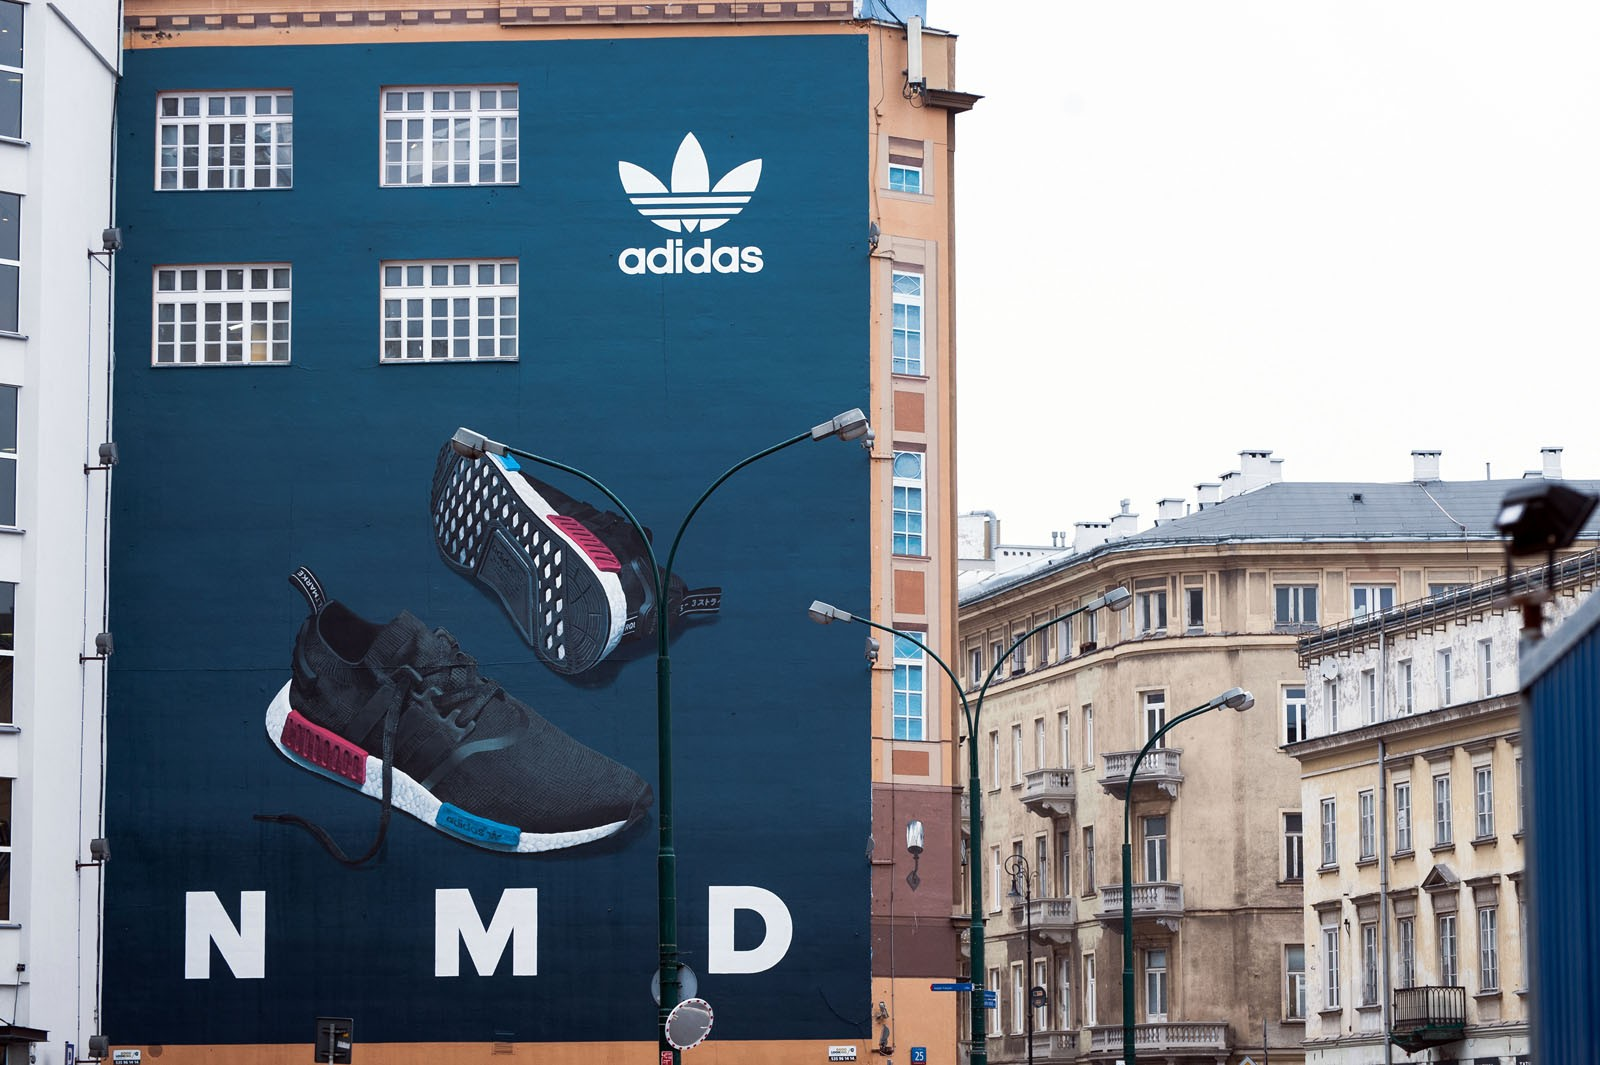 Commercial mural for Adidas brand in Warsaw Bracka Street Polish pre-premiere NMD sneakers | Polish premiere of NMD adidas Originals | Portfolio